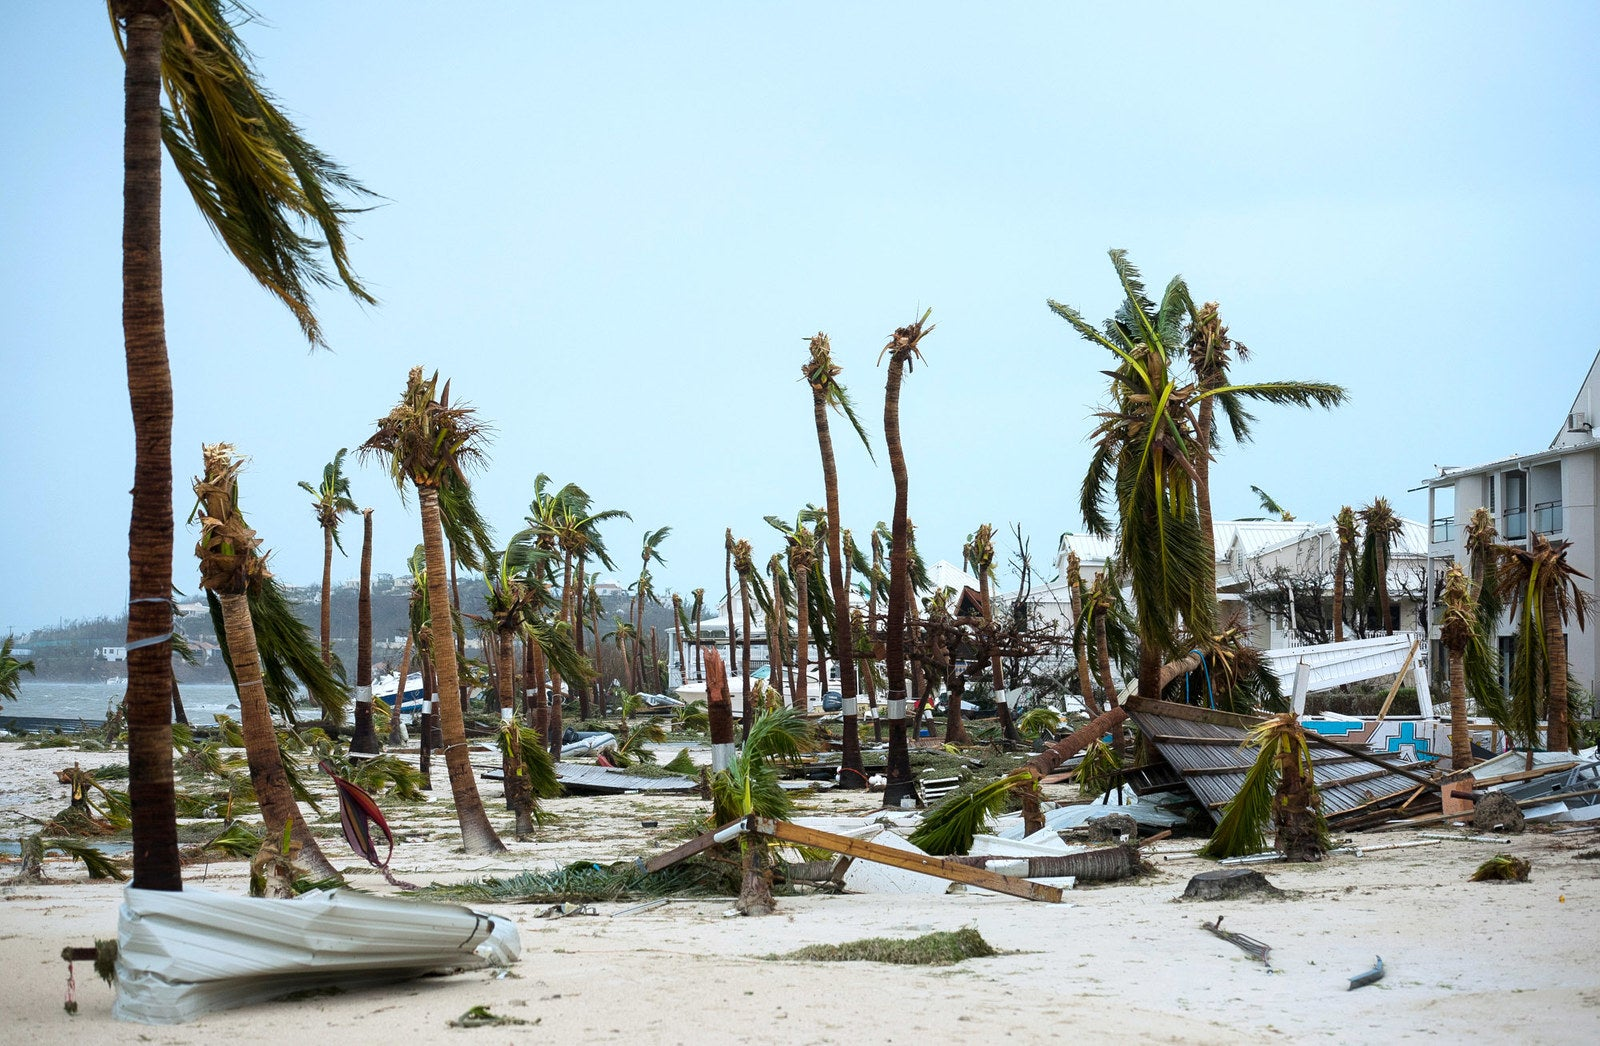 Broken palm trees on the beach of the Hotel Mercure in Marigot, Saint Martin.